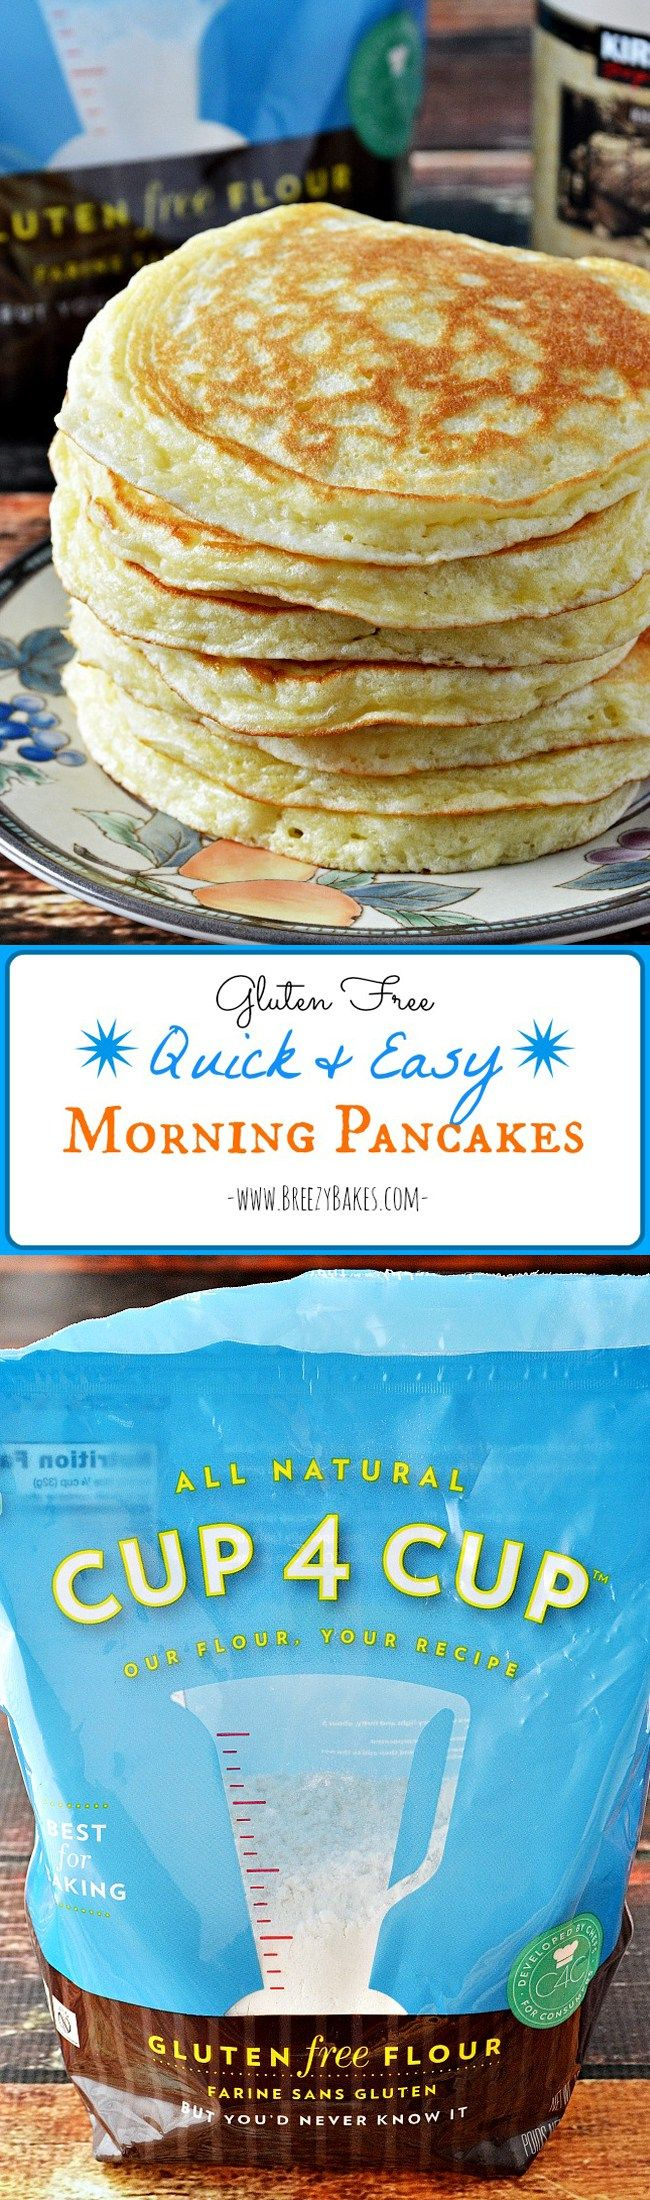 These Gluten Free Quick and Easy Morning Pancakes are an absolutely perfect gluten free pancake made with Cup 4 Cup Gluten Free Flour. You can make these any morning!